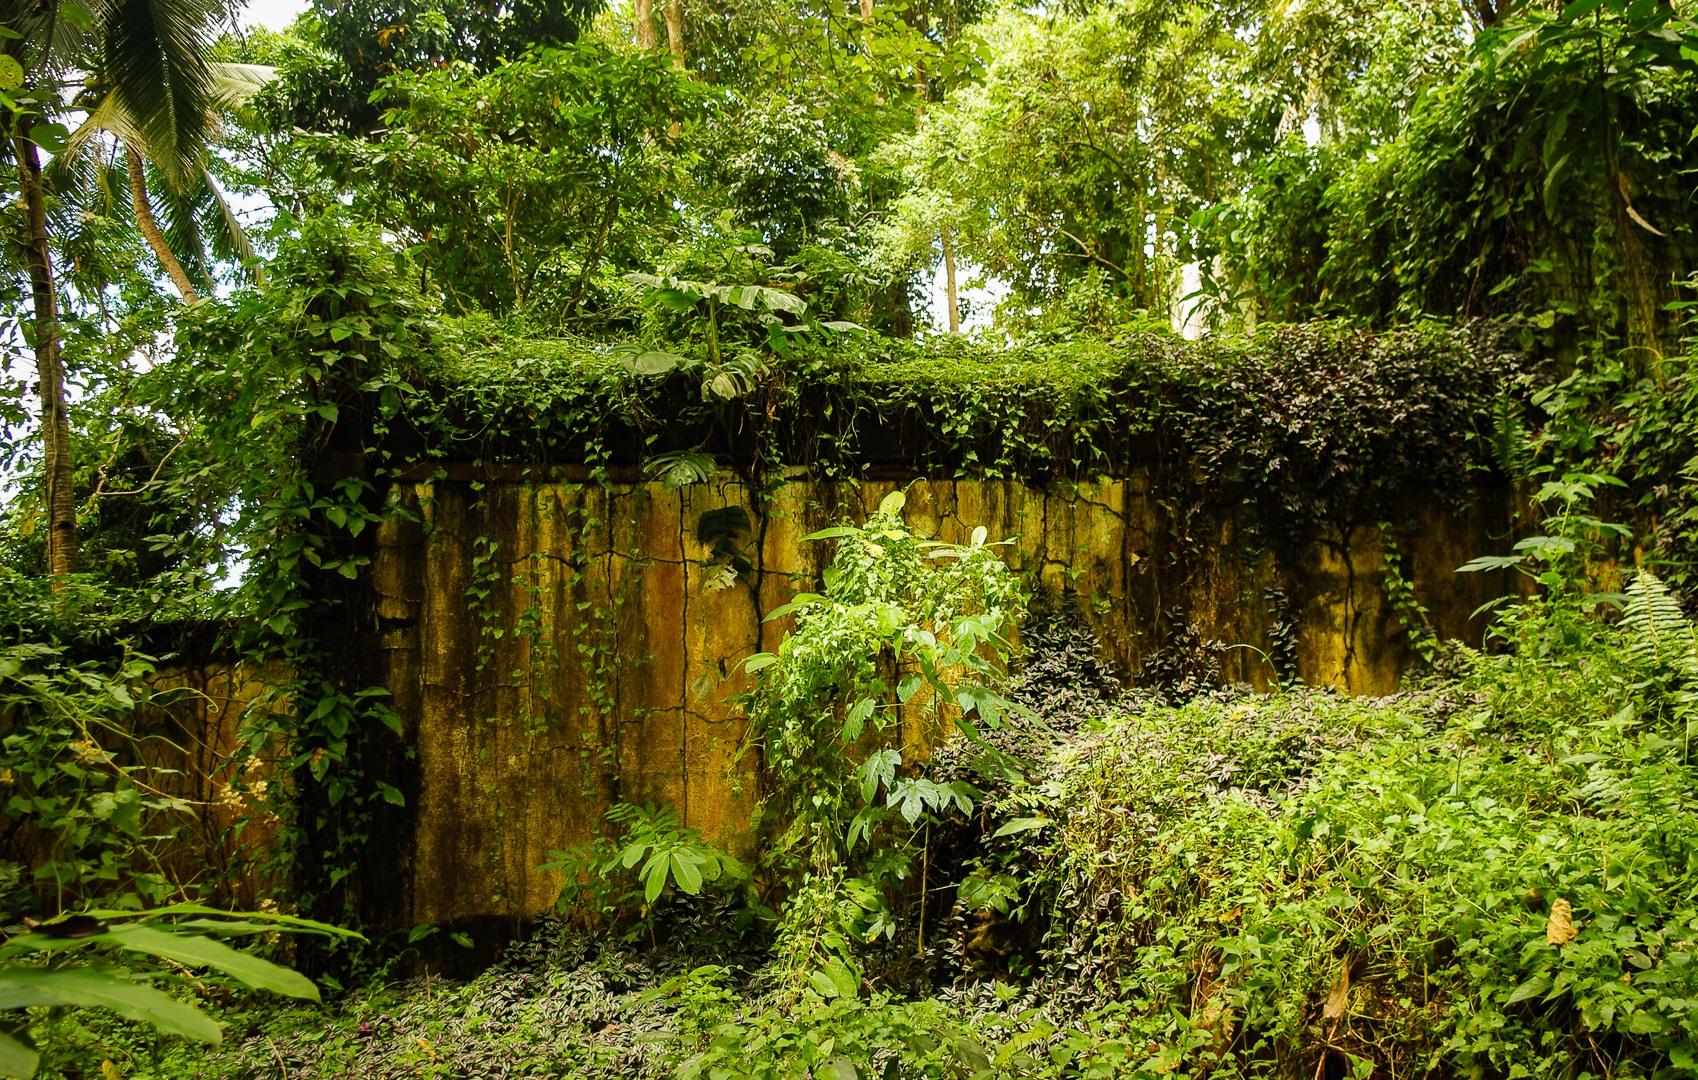 The ruins of the unfinished hotel, Philippines